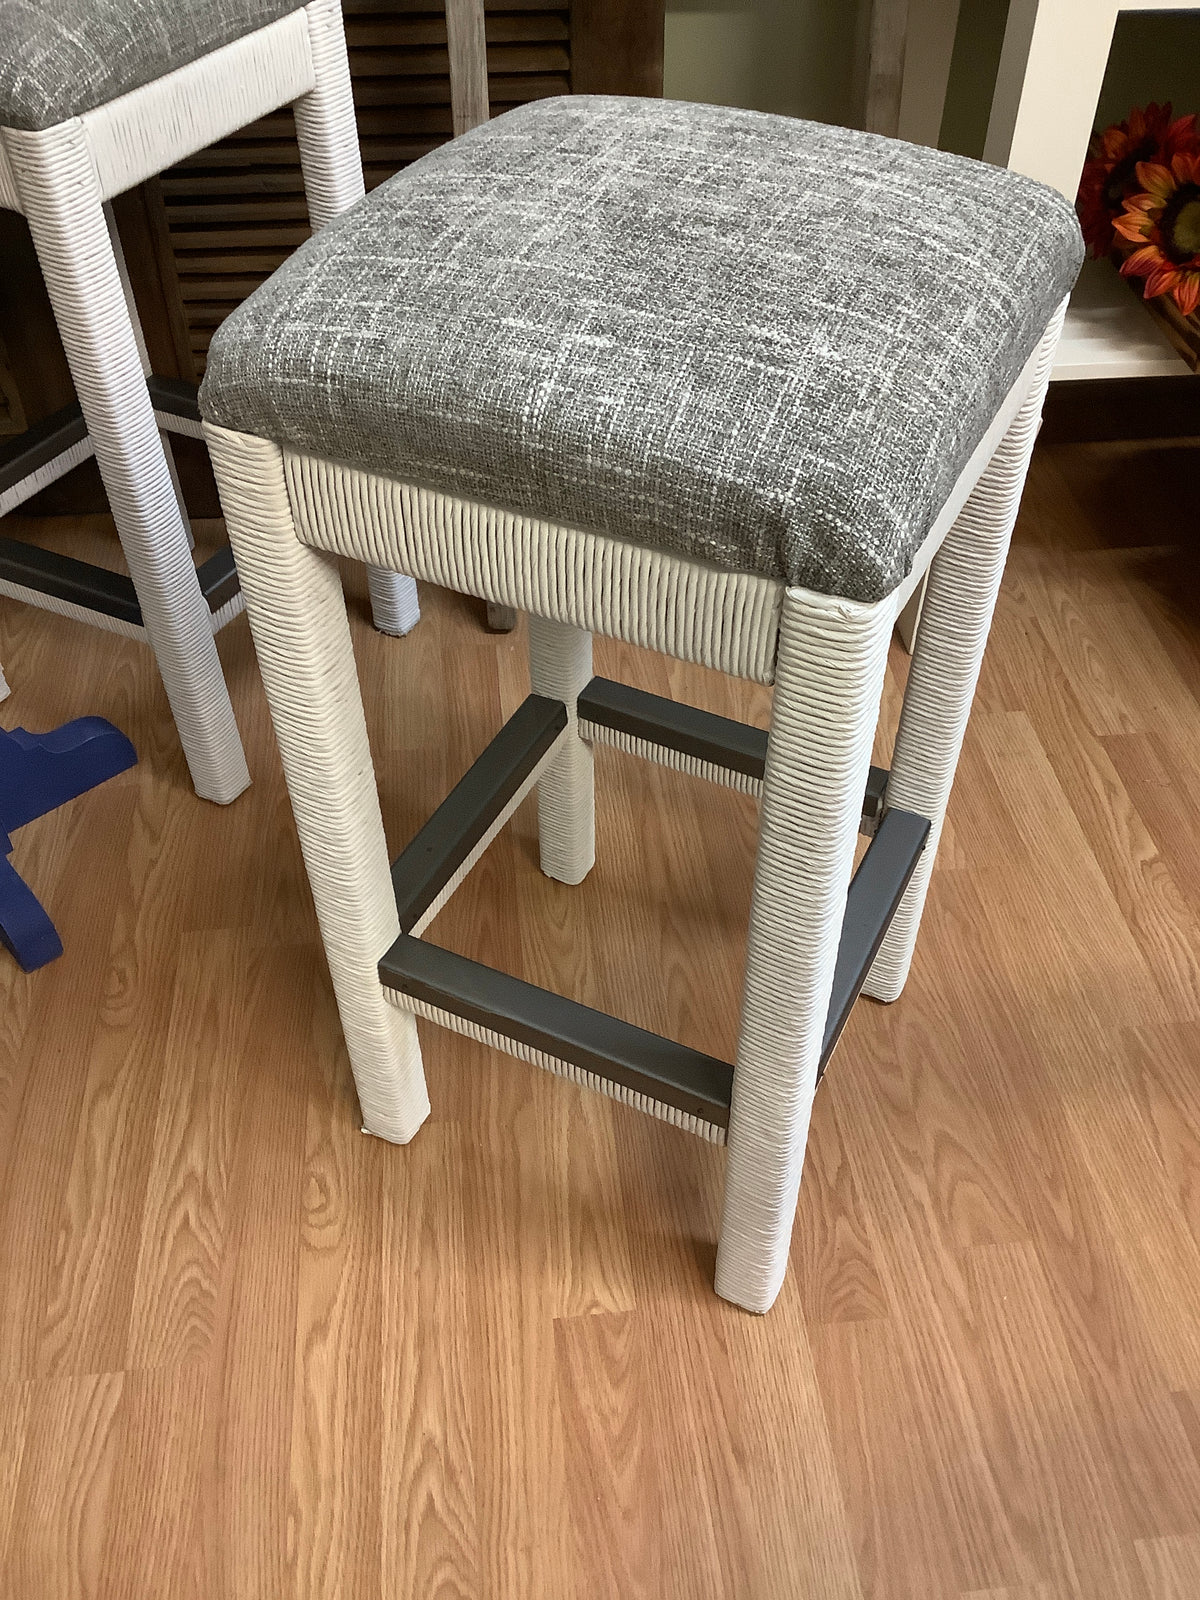 Wicker base stools